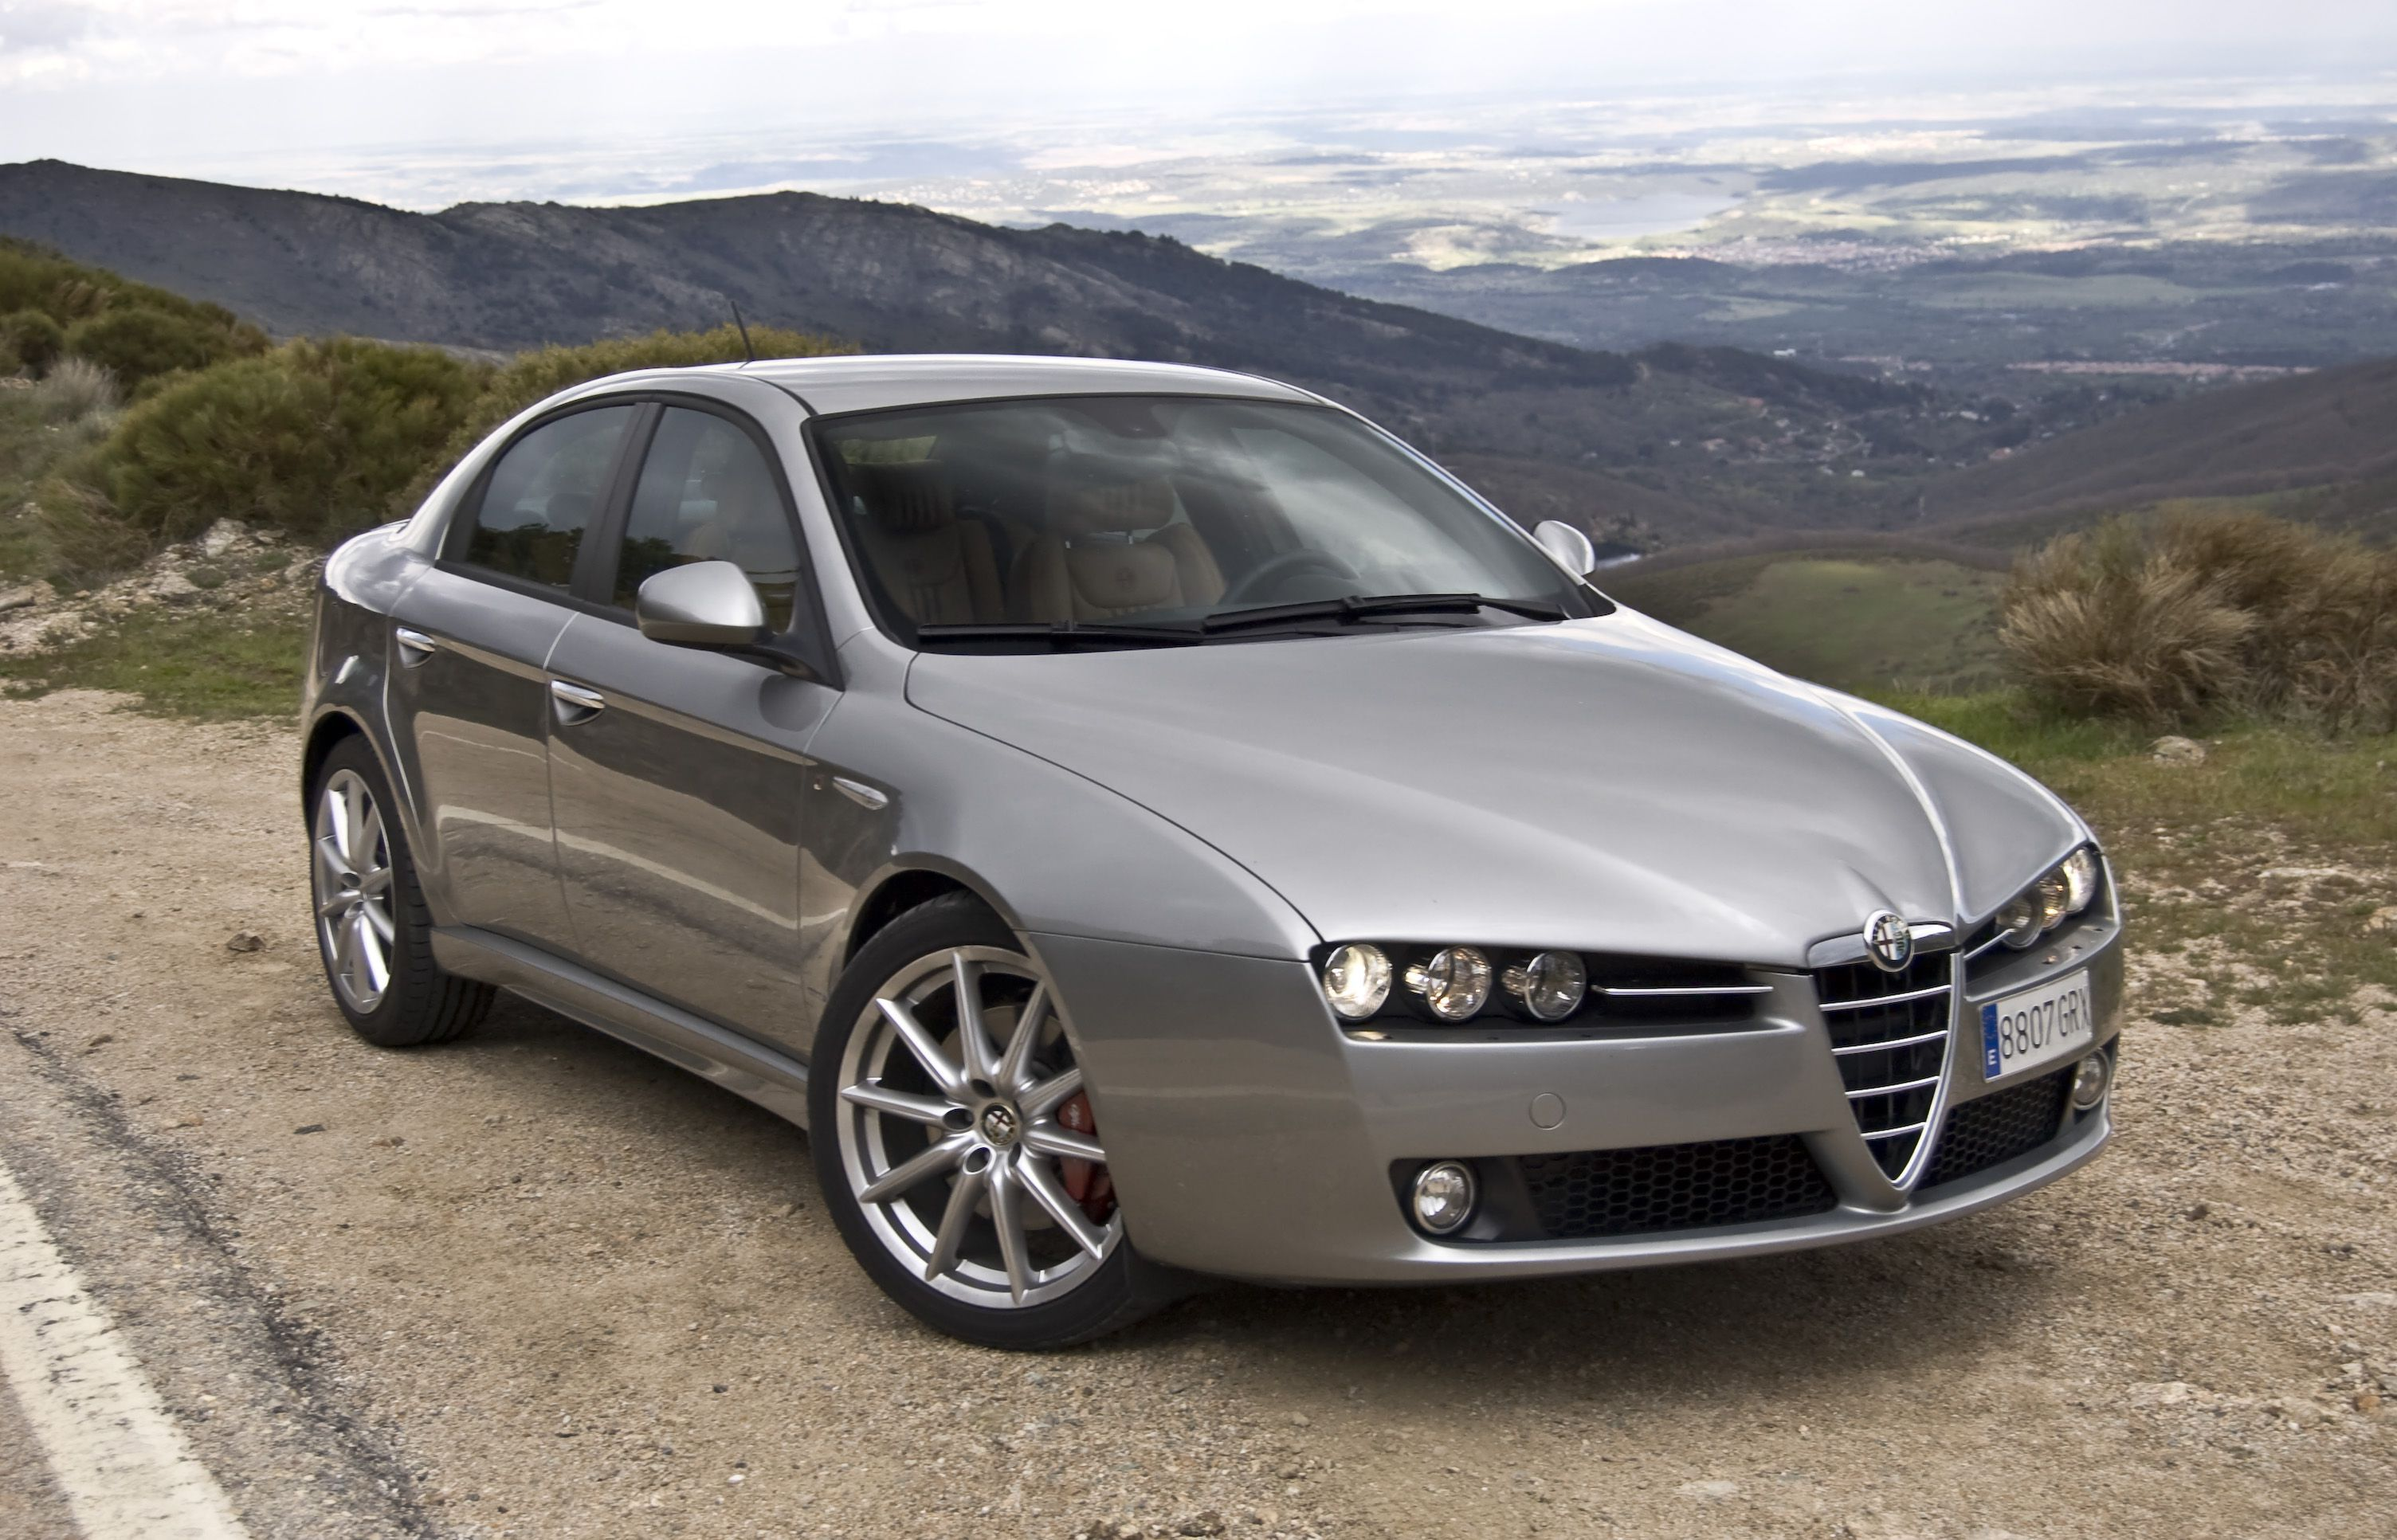 Alfa Romeo Brera High Definition Wallpapers